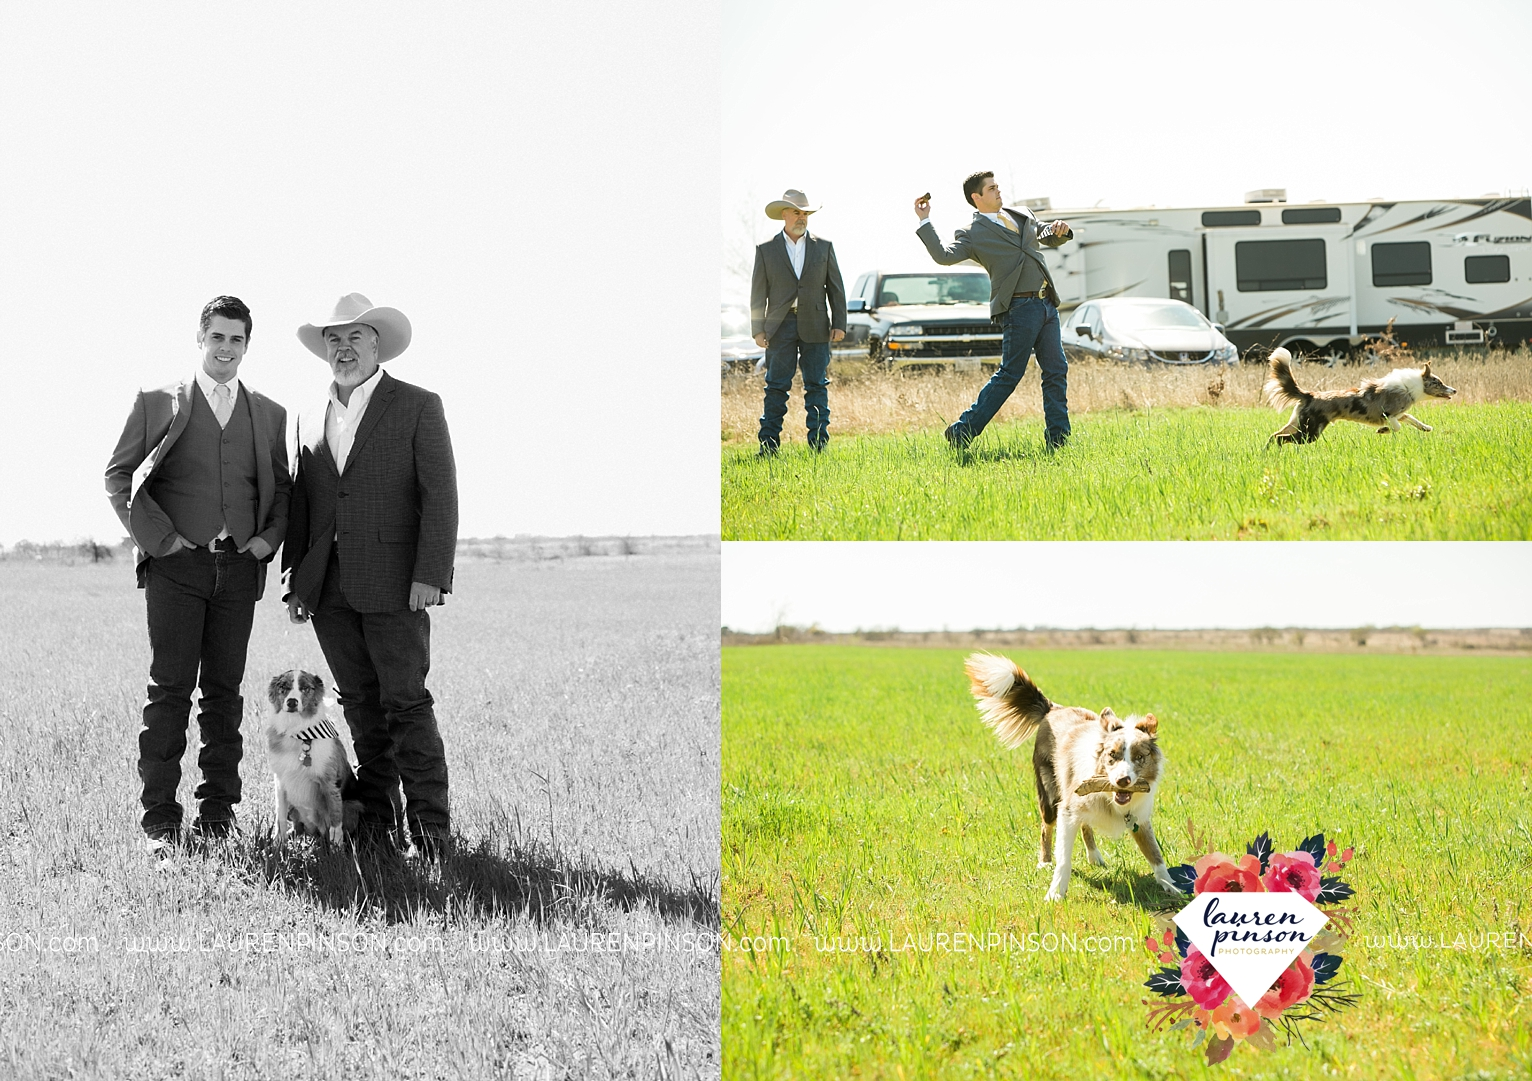 wichita-falls-texas-wedding-photographer-bowie-nocona-henrietta-country-barn-wedding_2151.jpg